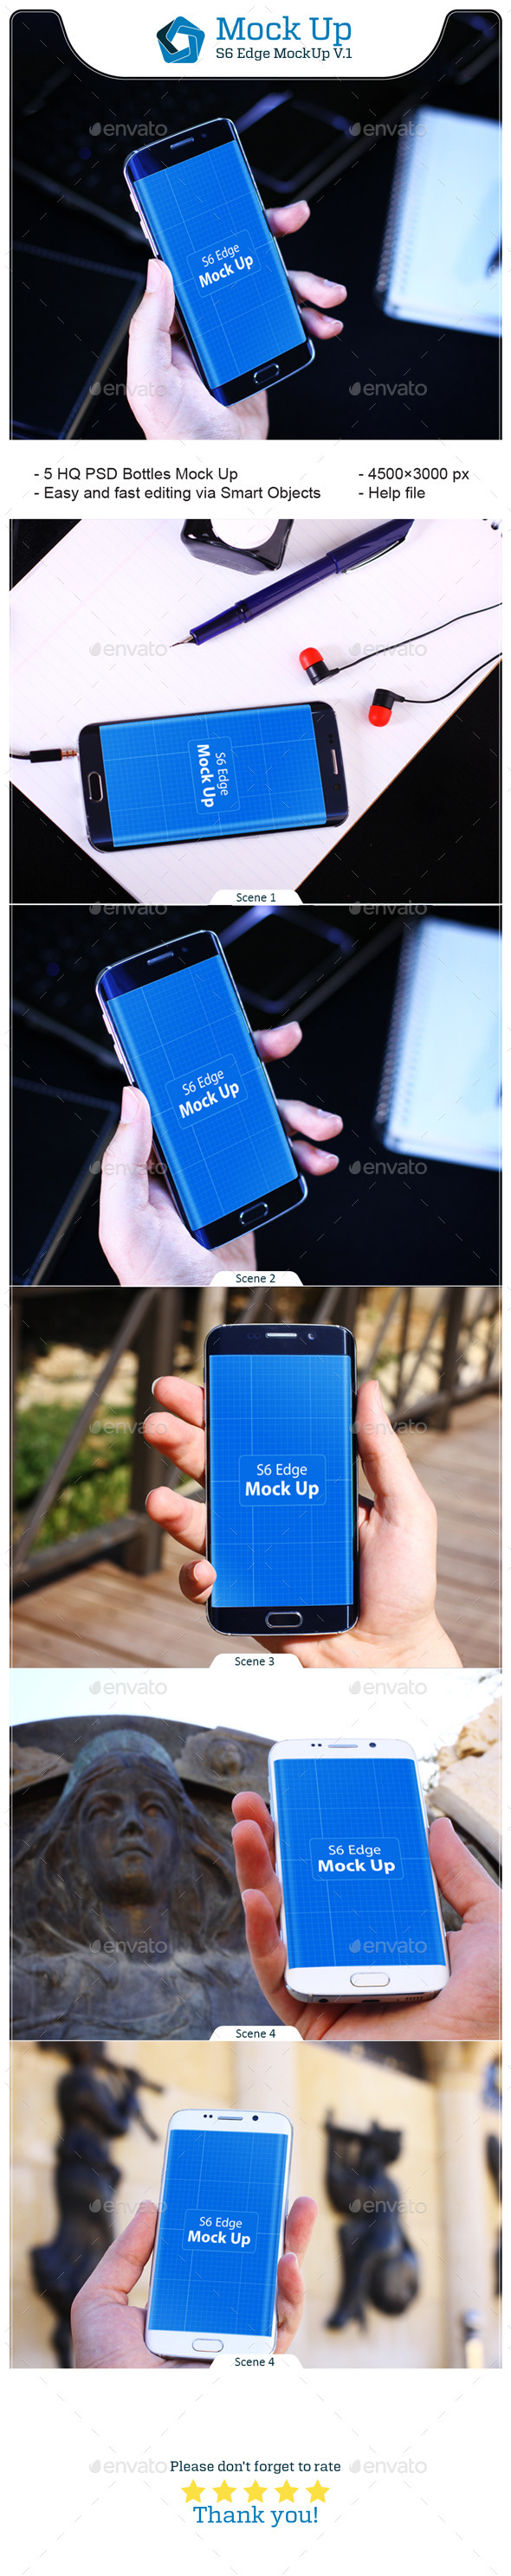 GraphicRiver S6 Edge MockUp V.1 11564387